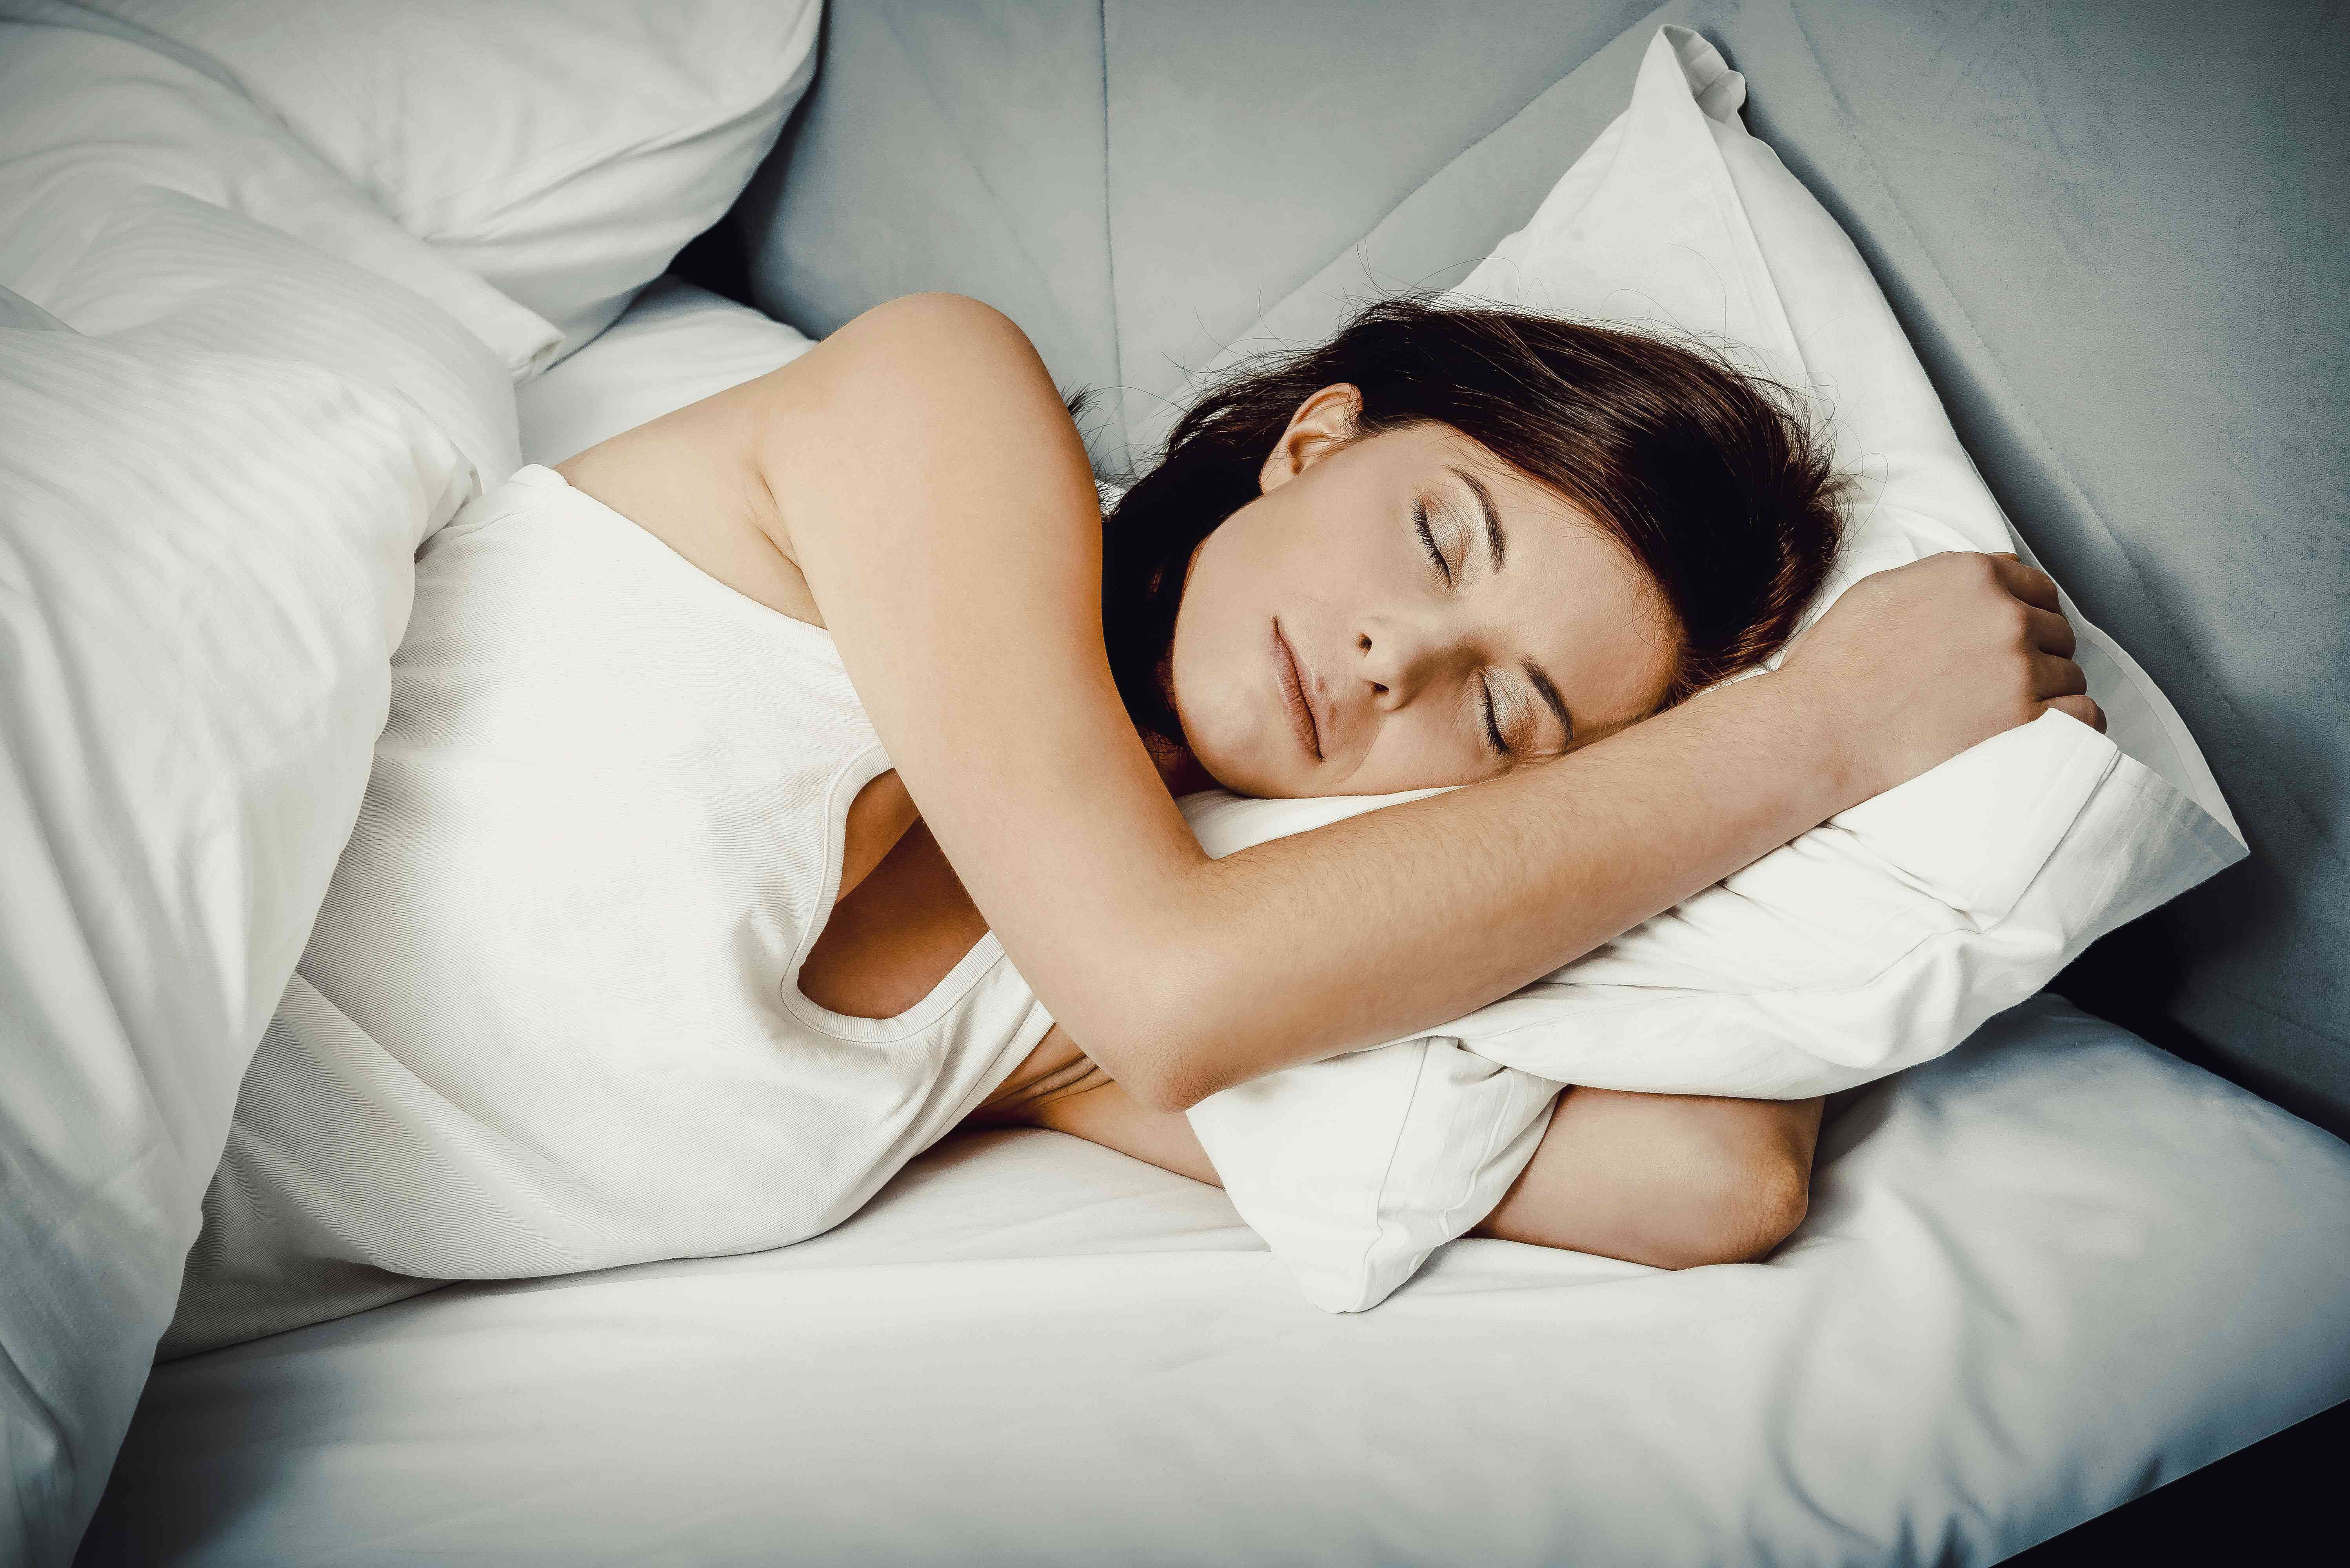 A woman is sleeping peacefully in a bed.